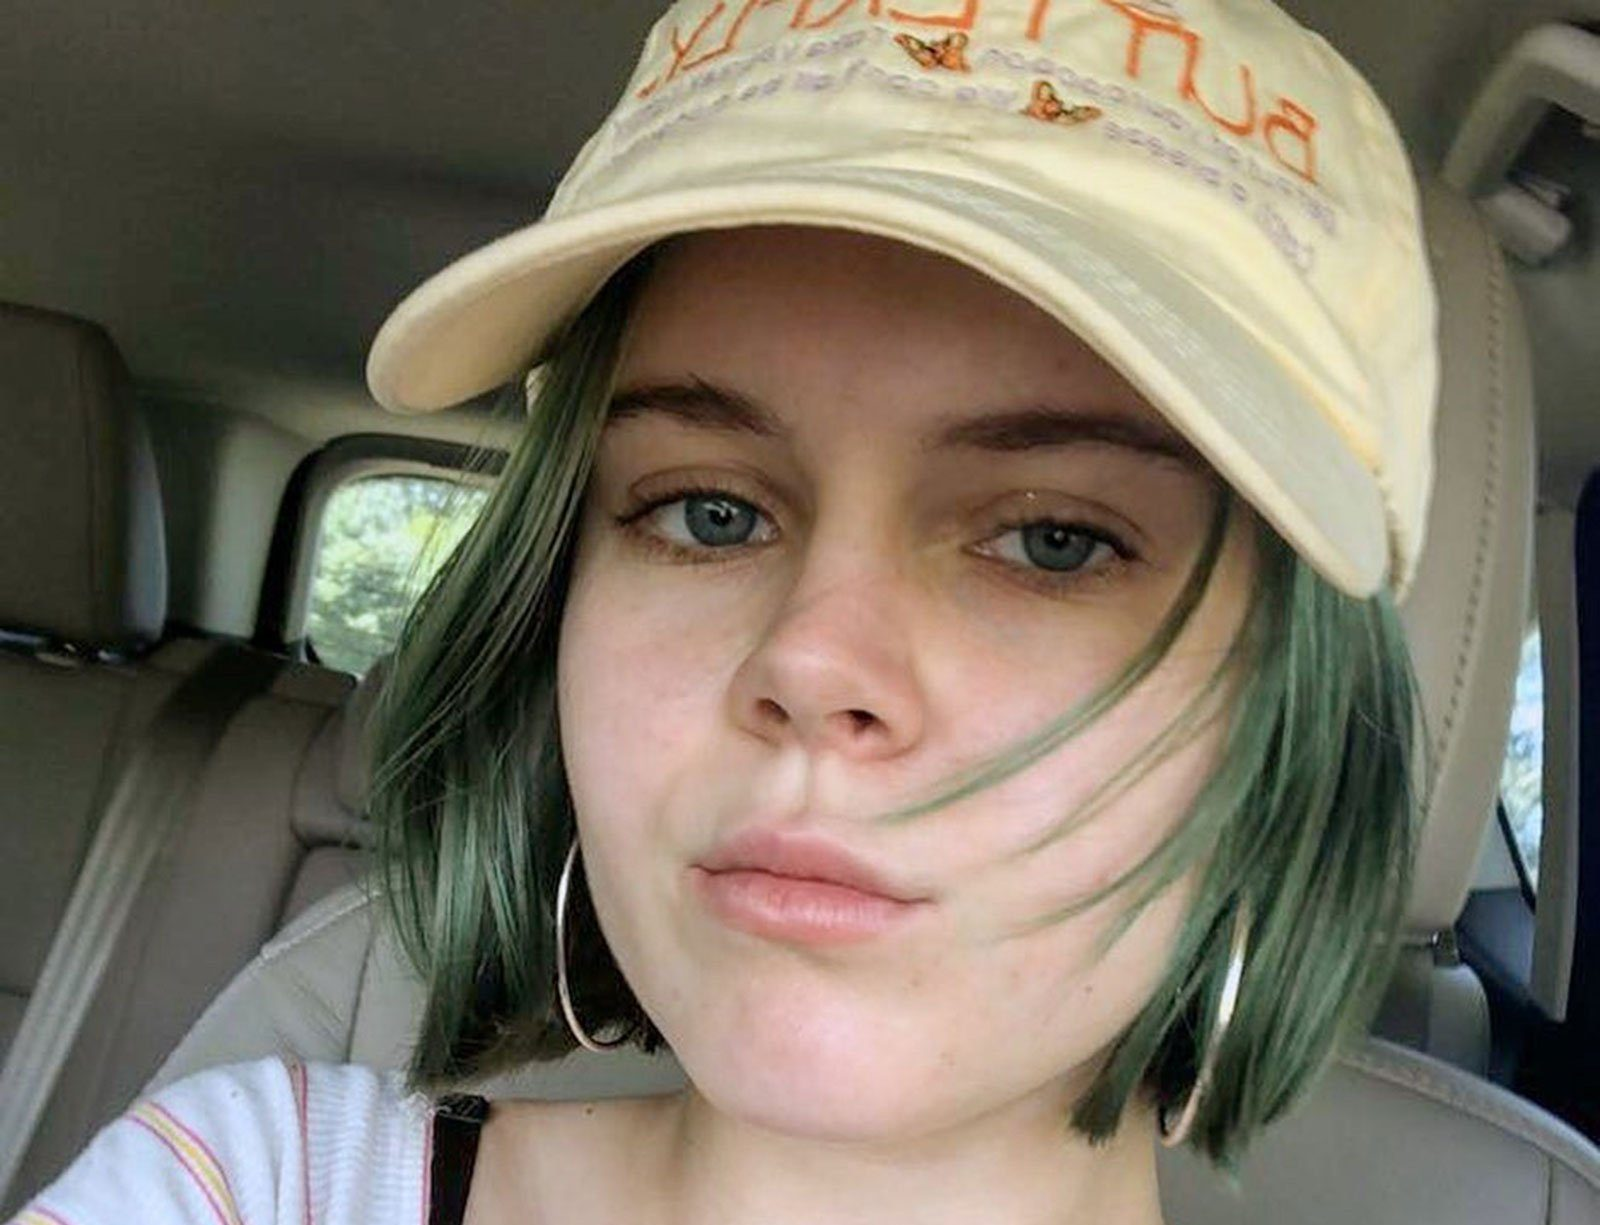 Tessa Majors, 18, had been walking through Morningside Park at 116th Street and Morningside Drive, just blocks from Barnard's Manhattan camps -- when police believe she was confronted by between one and three assailants, NYPD Chief of Patrol Services Rodney Harrison said.